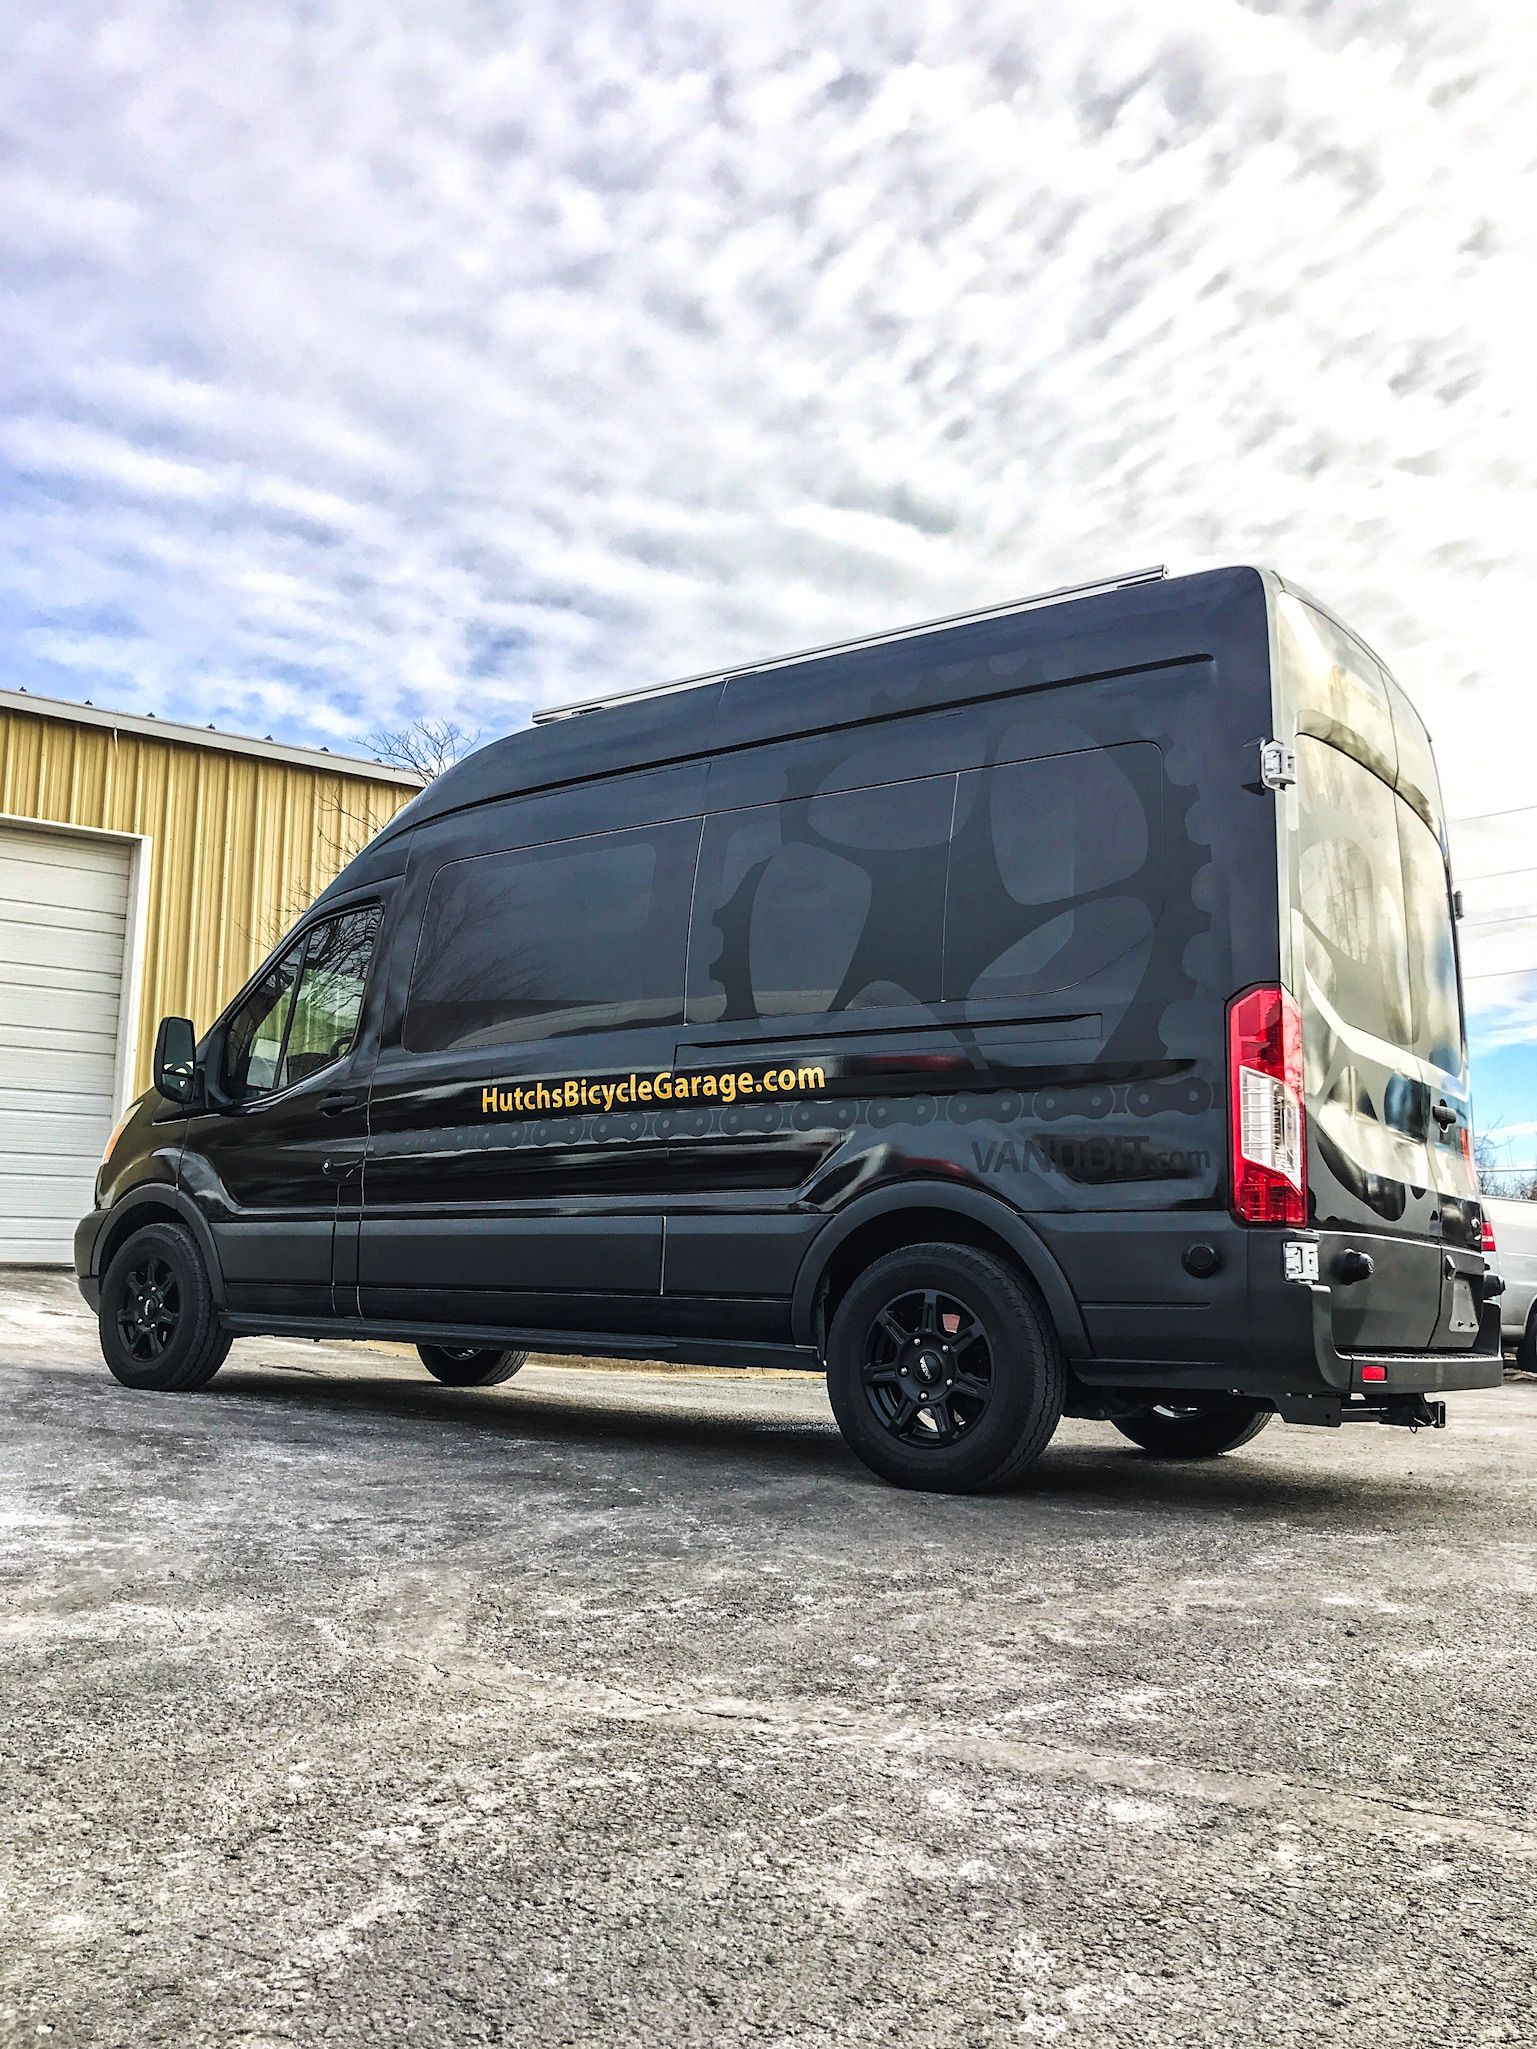 Vandoit Does Customgraphics To Set Your Van Apart Graphics Decals Vandecals Vangraphics Vanlife